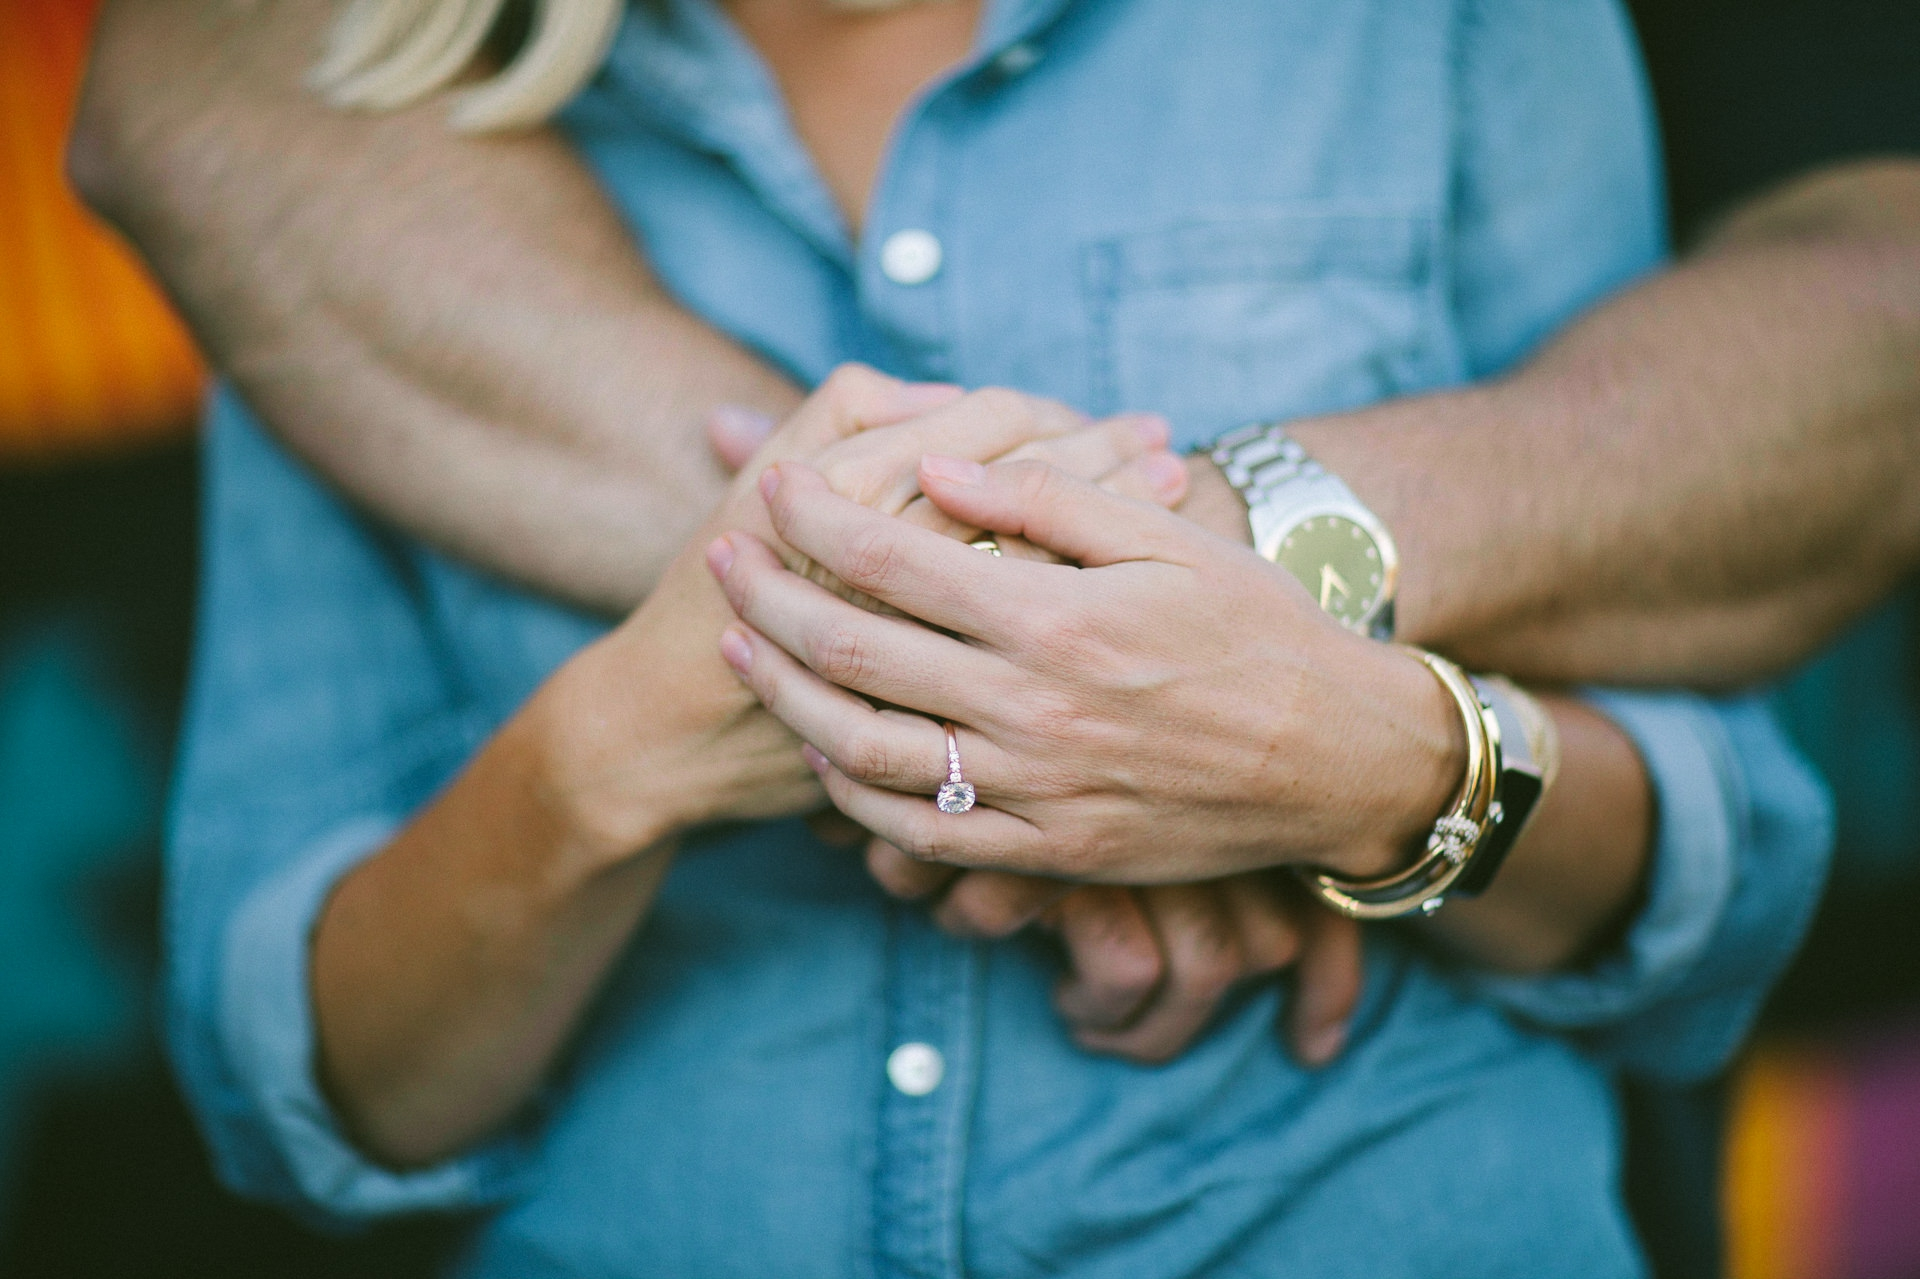 Sara Shookman Angelo DiFranco Engagement photos in cleveland by too much awesomeness photography 14.jpg